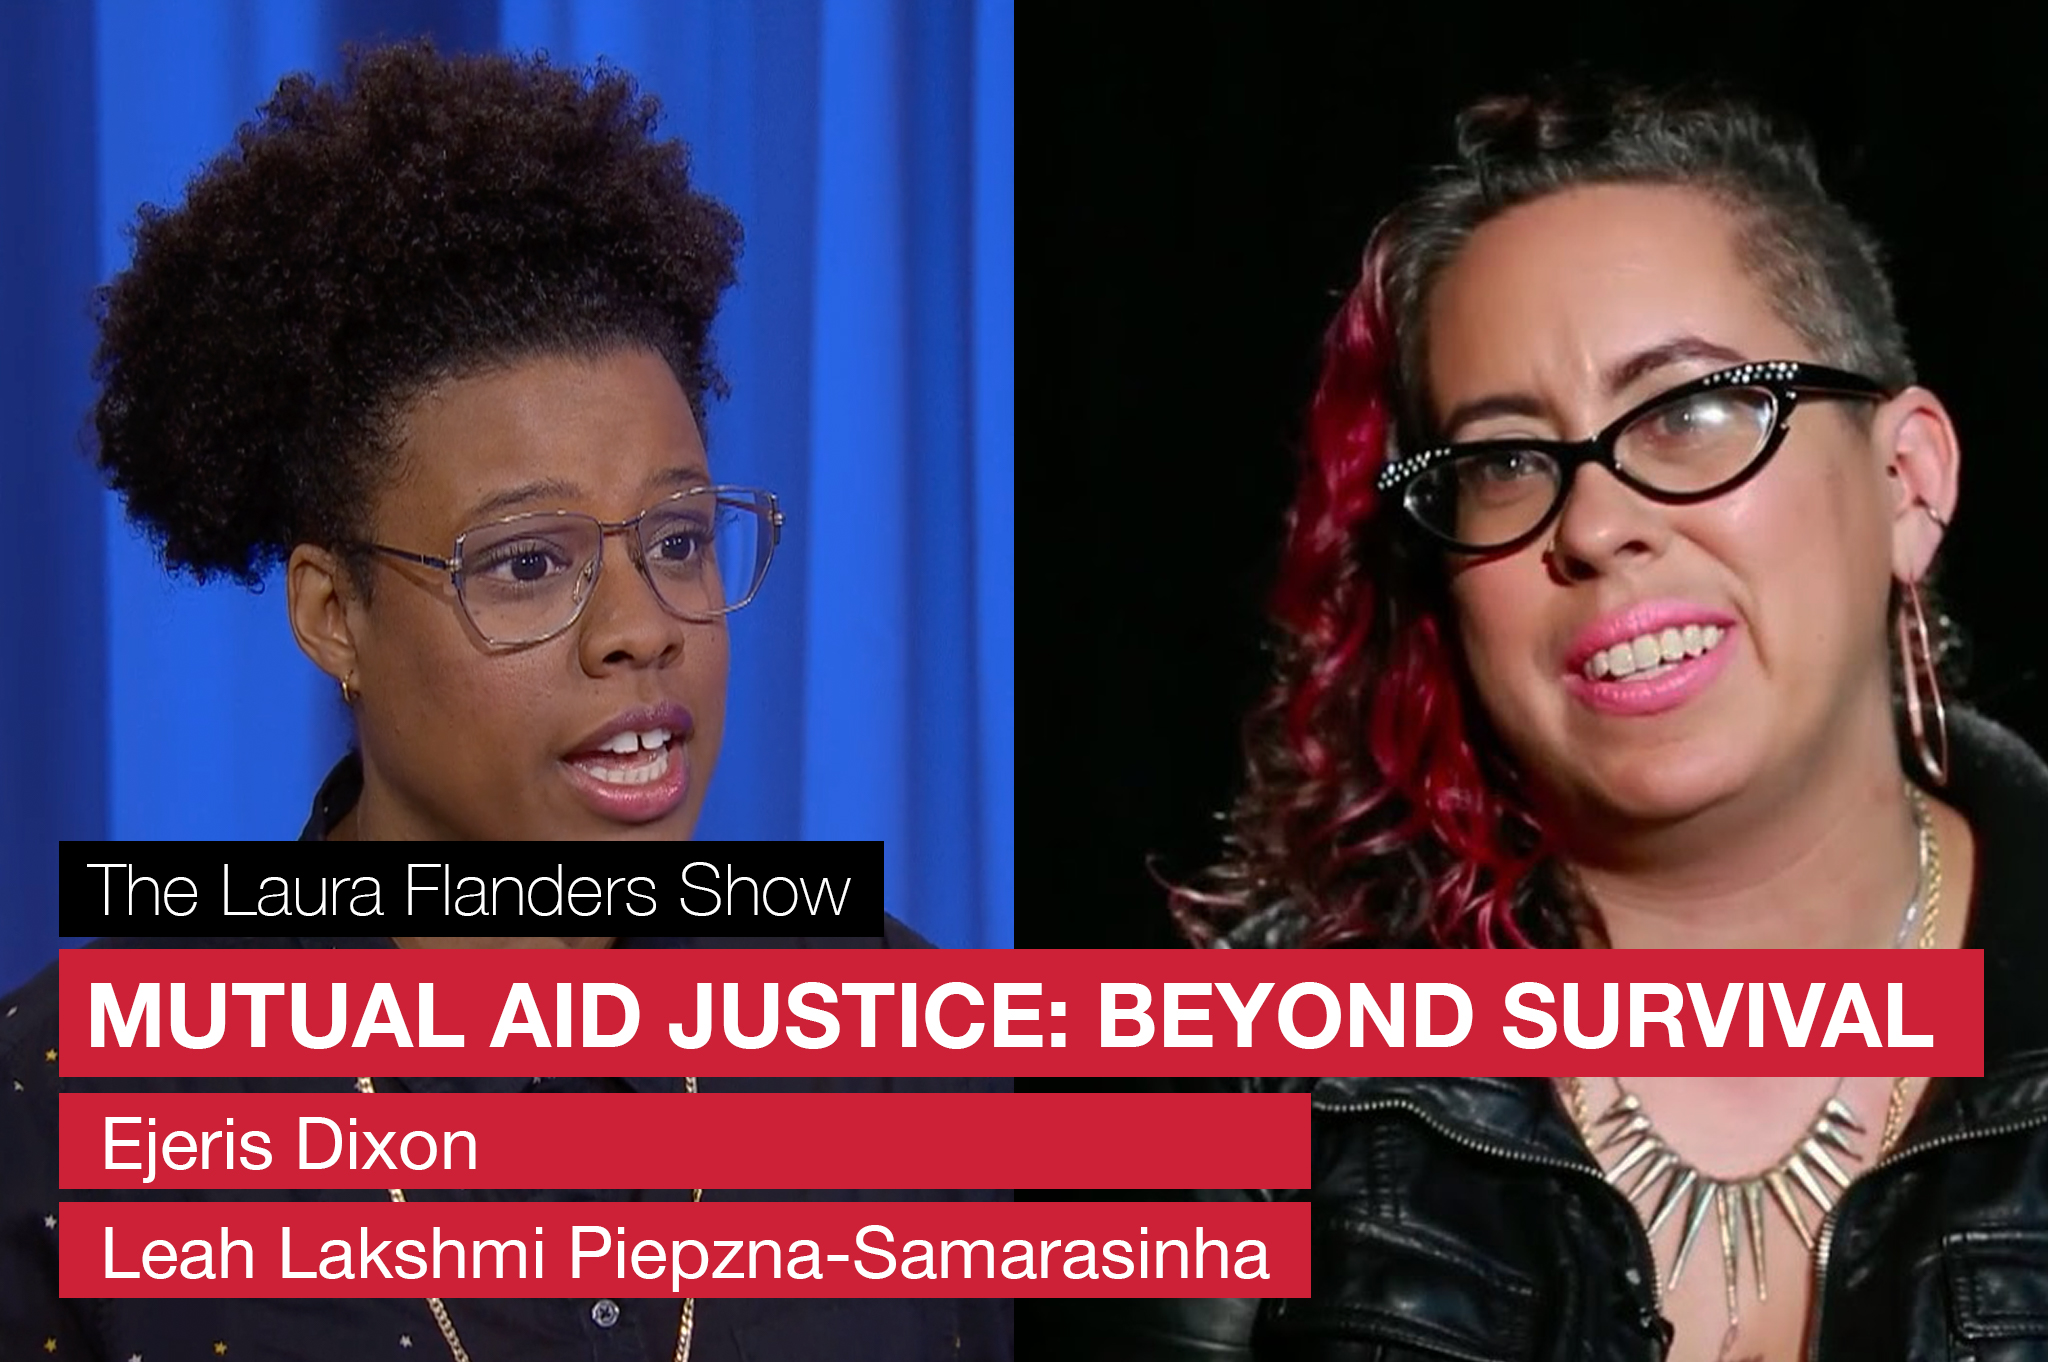 Mutual aid justice: Beyond survival